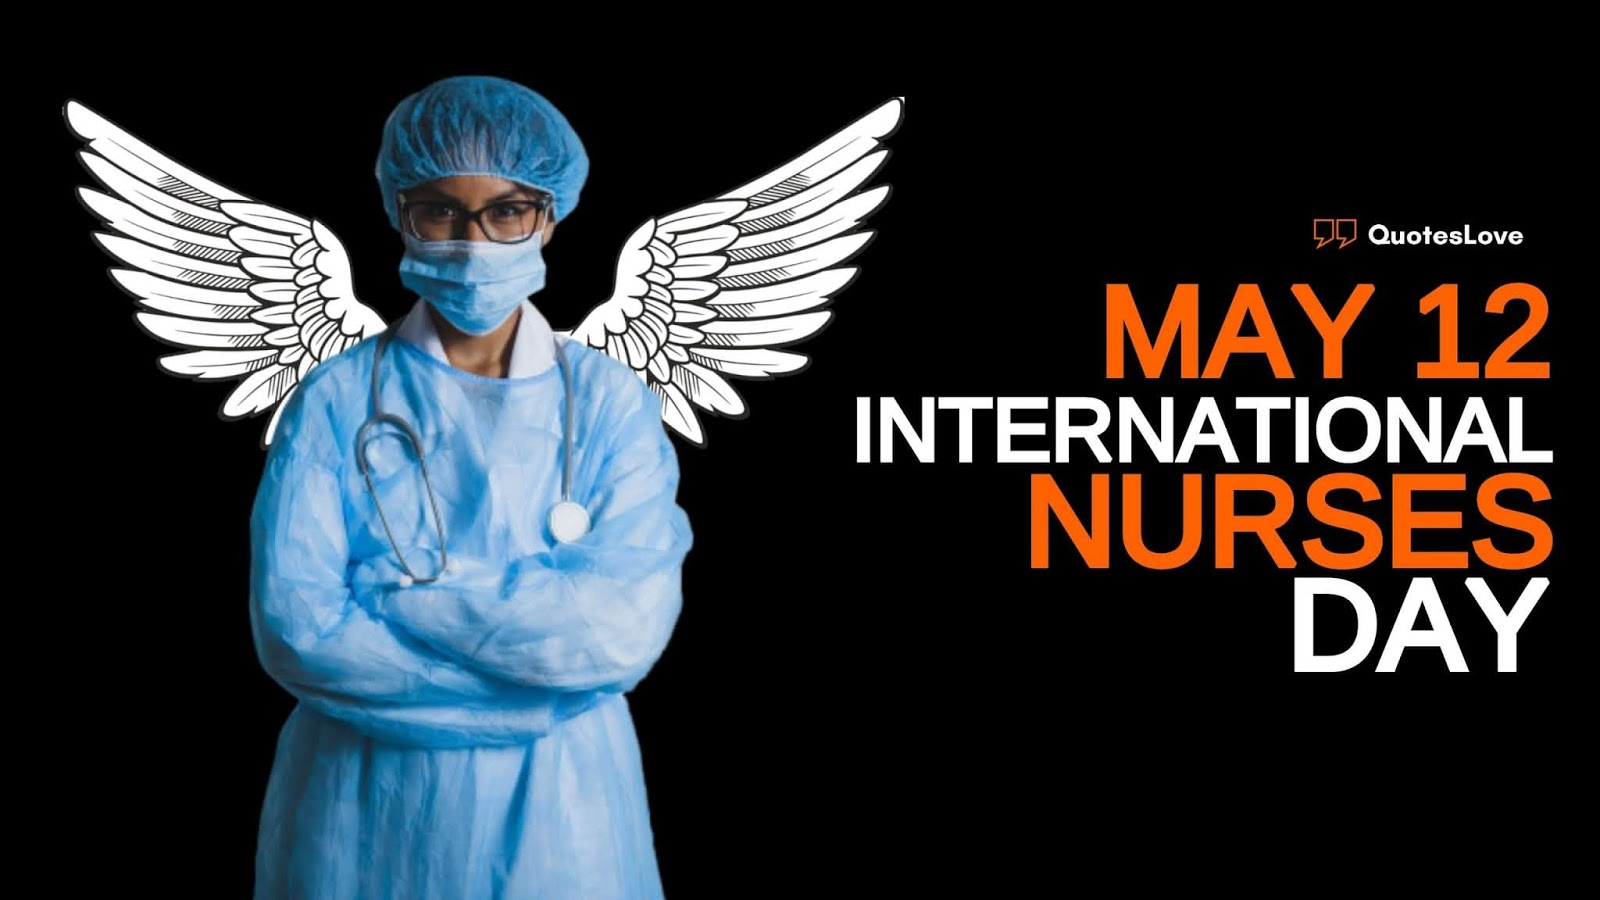 International Nurses Day Quotes, Greetings, Messages, Images, Pictures